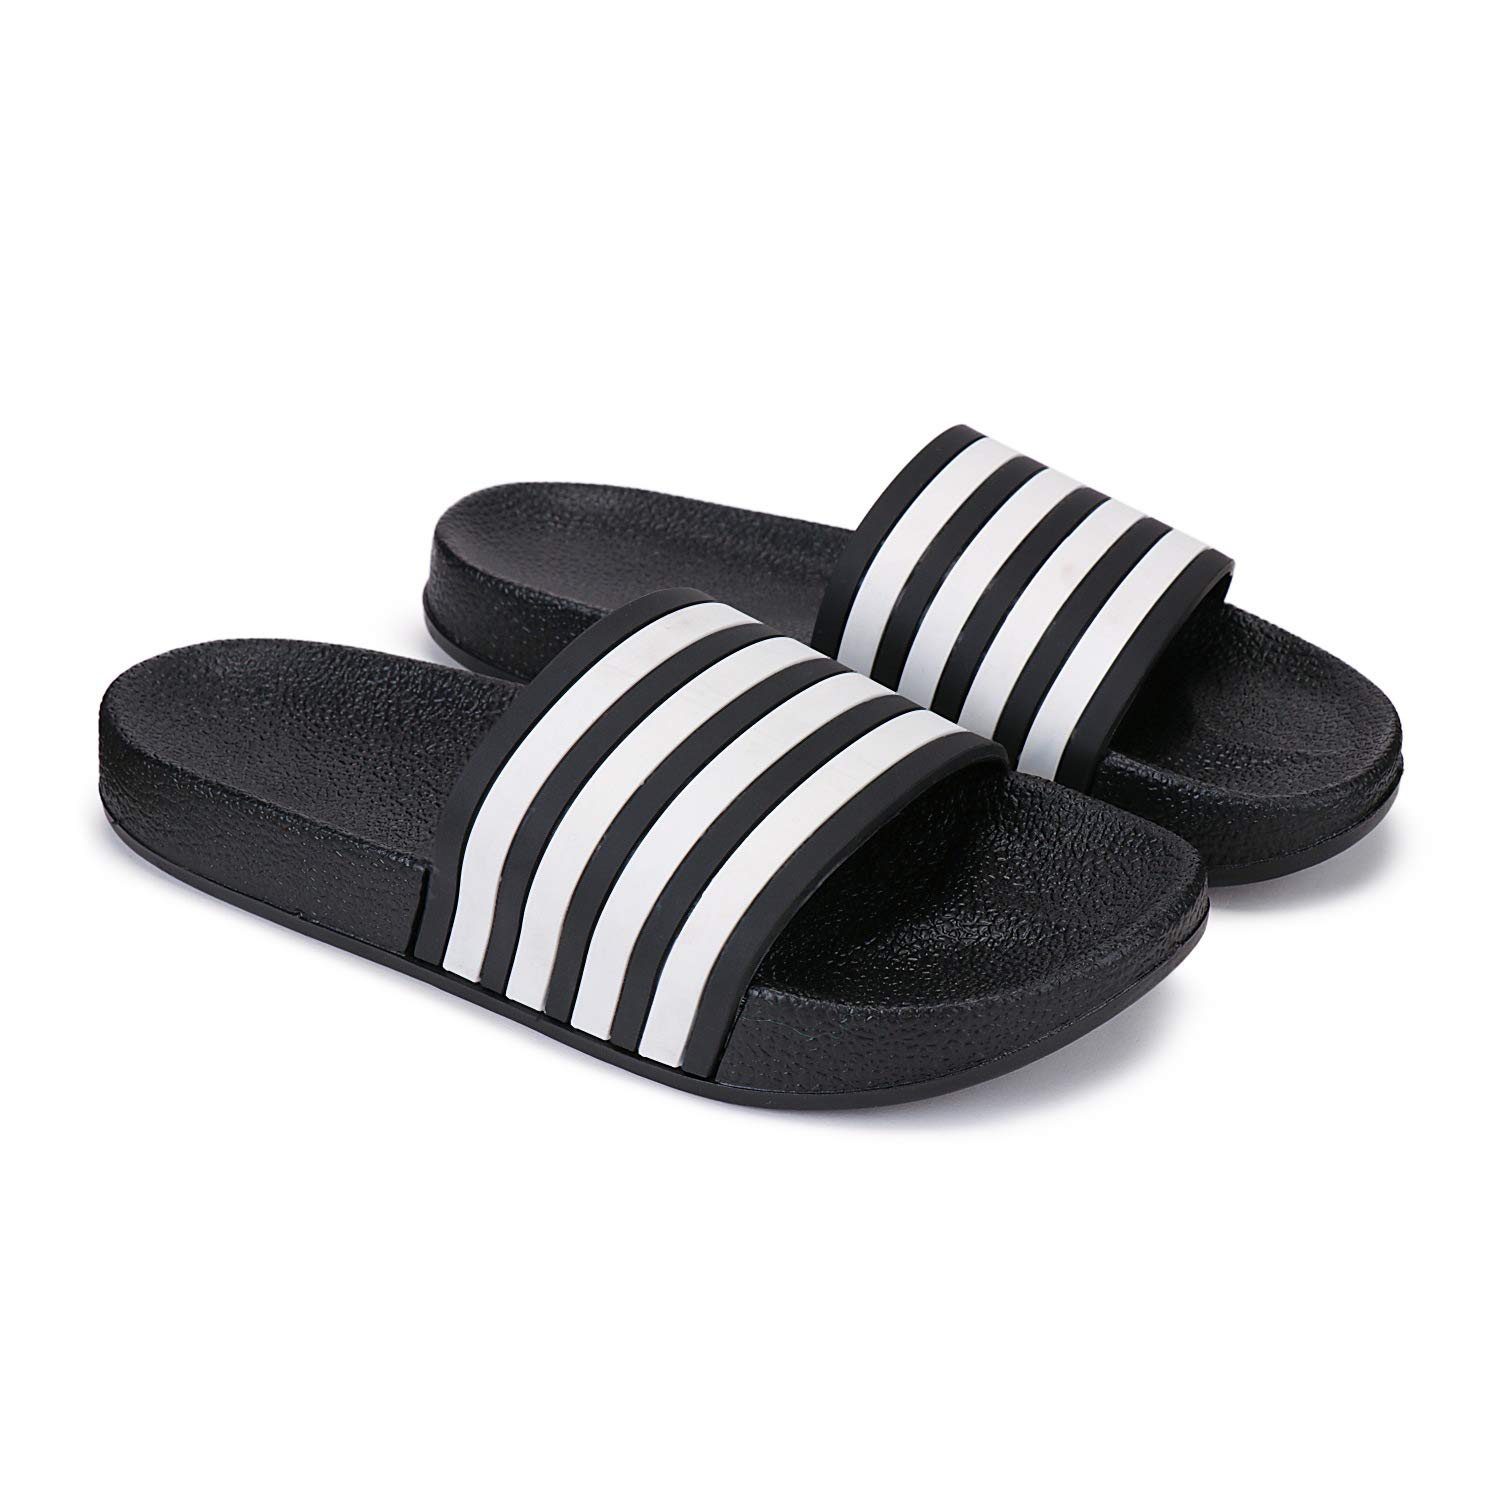 Zenwear Slip On Flip Flops, Slipper for Men, Black: Amazon.in: Shoes &  Handbags